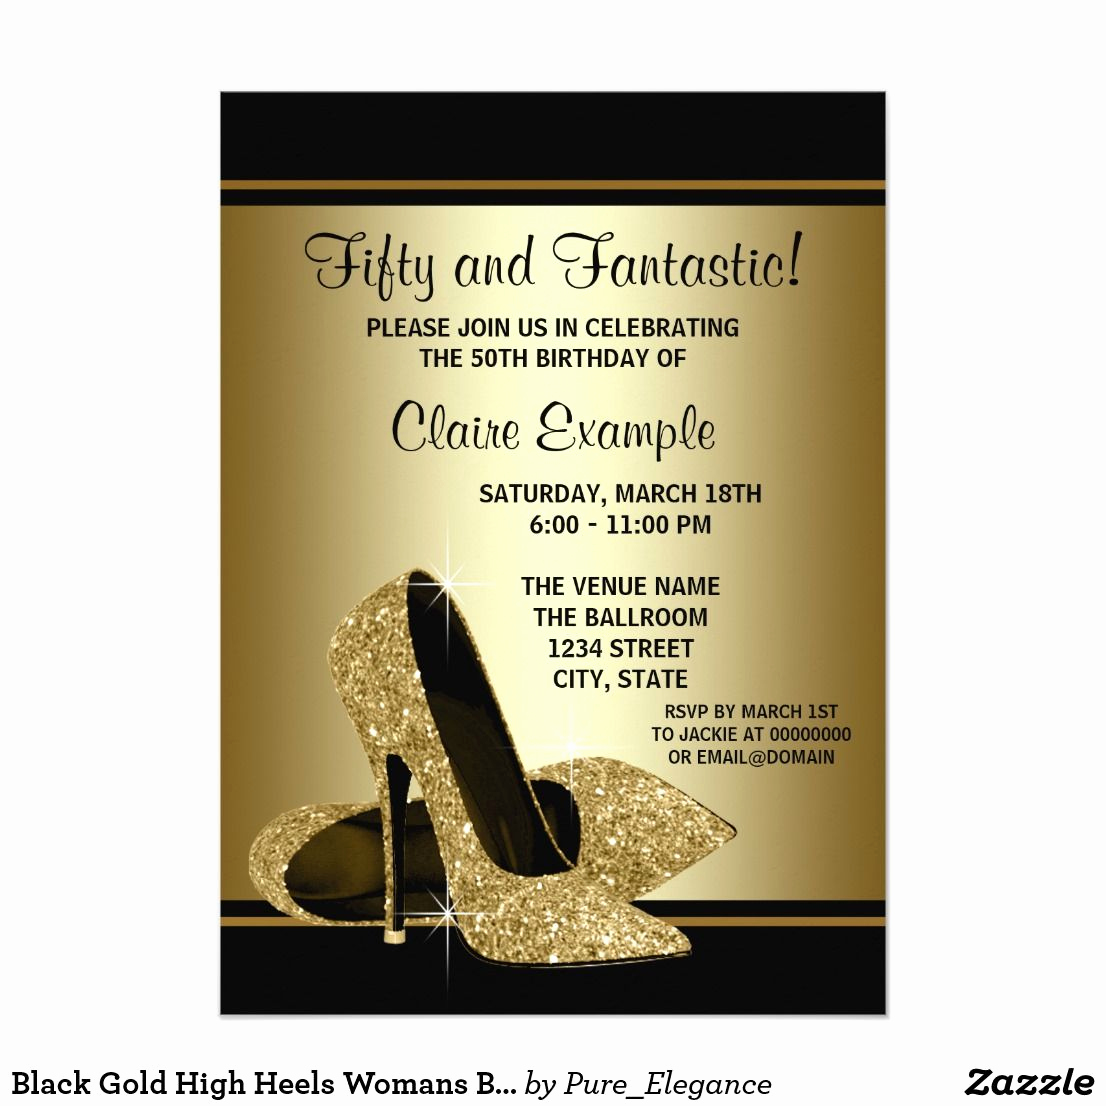 Black and Gold Invitation Template Beautiful Black Gold High Heels Womans Birthday Party Invitation